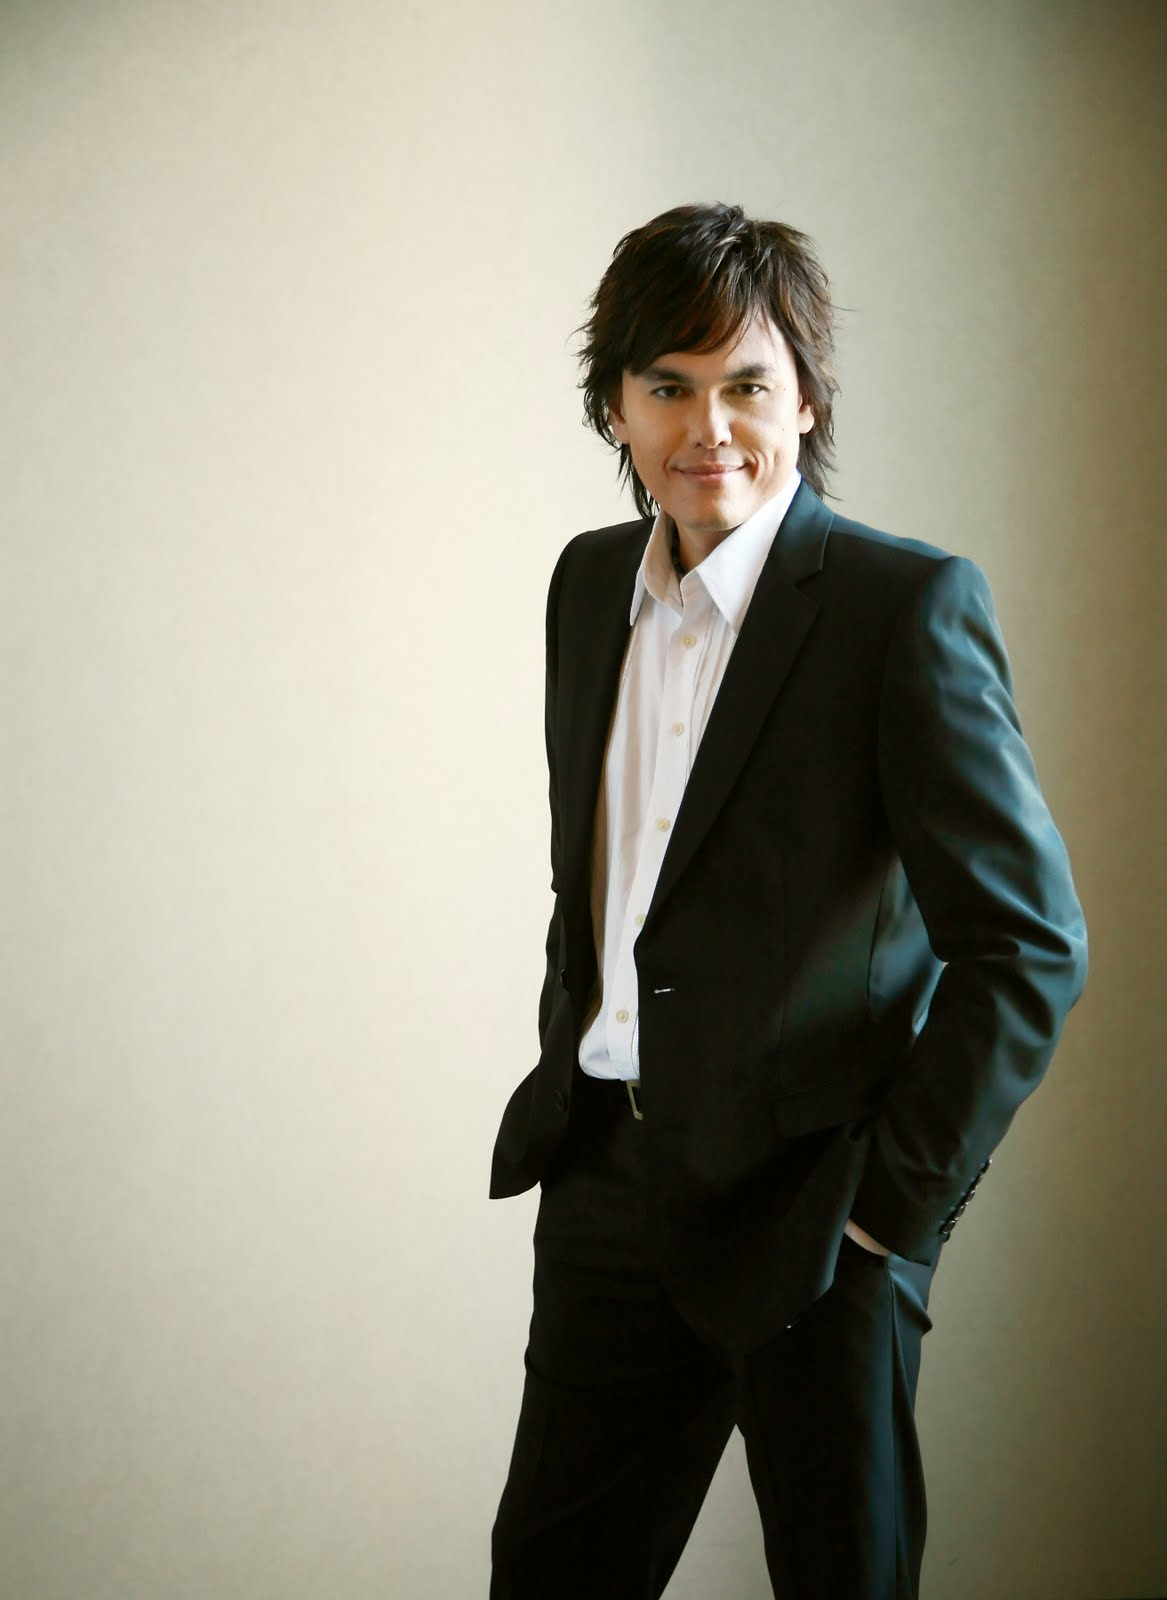 How Old Is Joseph Prince http://vicsmediaroom.wordpress.com/2011/06/